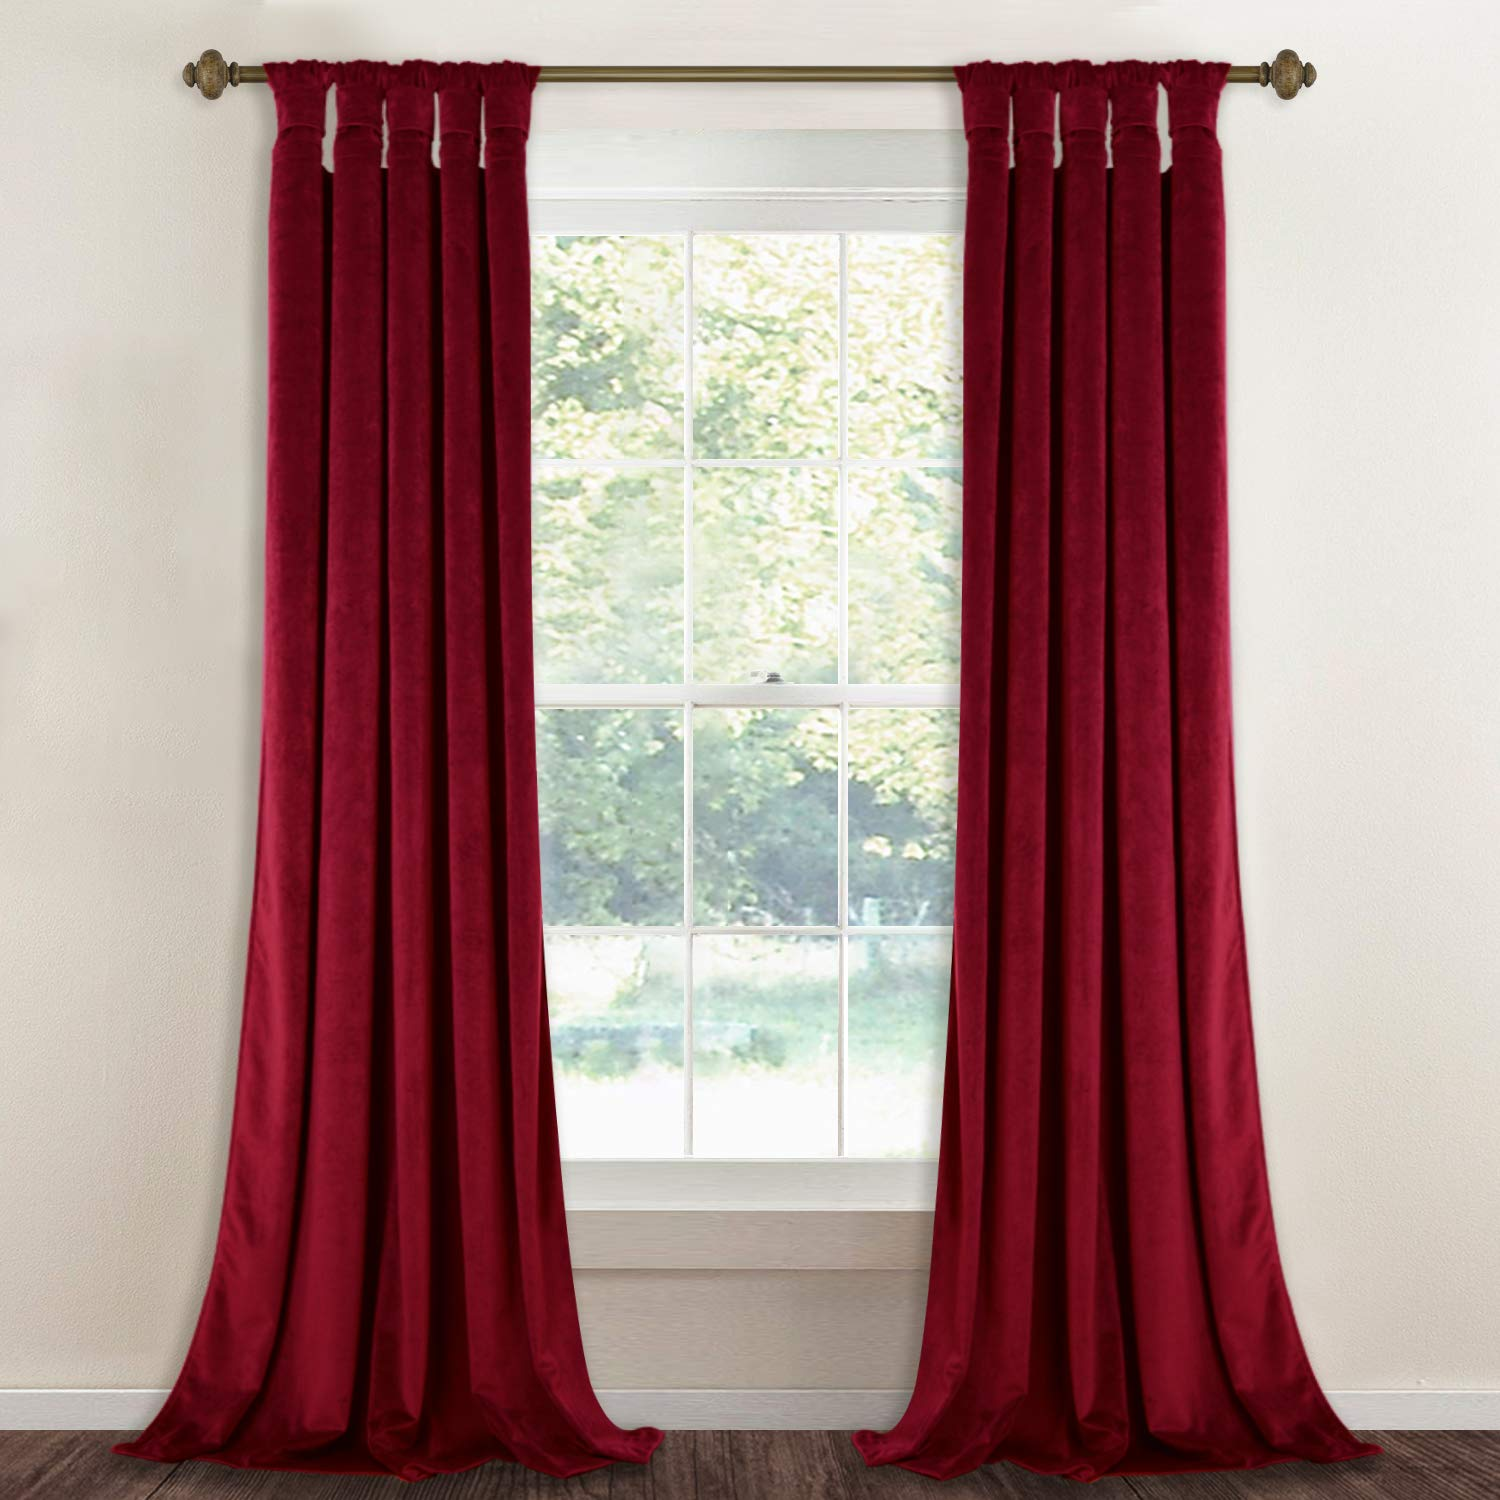 """Red Soundproof Velvet Curtains Theater - Luxurious Heavyweight Drapes with Stylish Twist Tab Light Blocking Privacy Panels for Master Bedroom/Media Room, 52"""" x 96"""", 2 Pcs"""